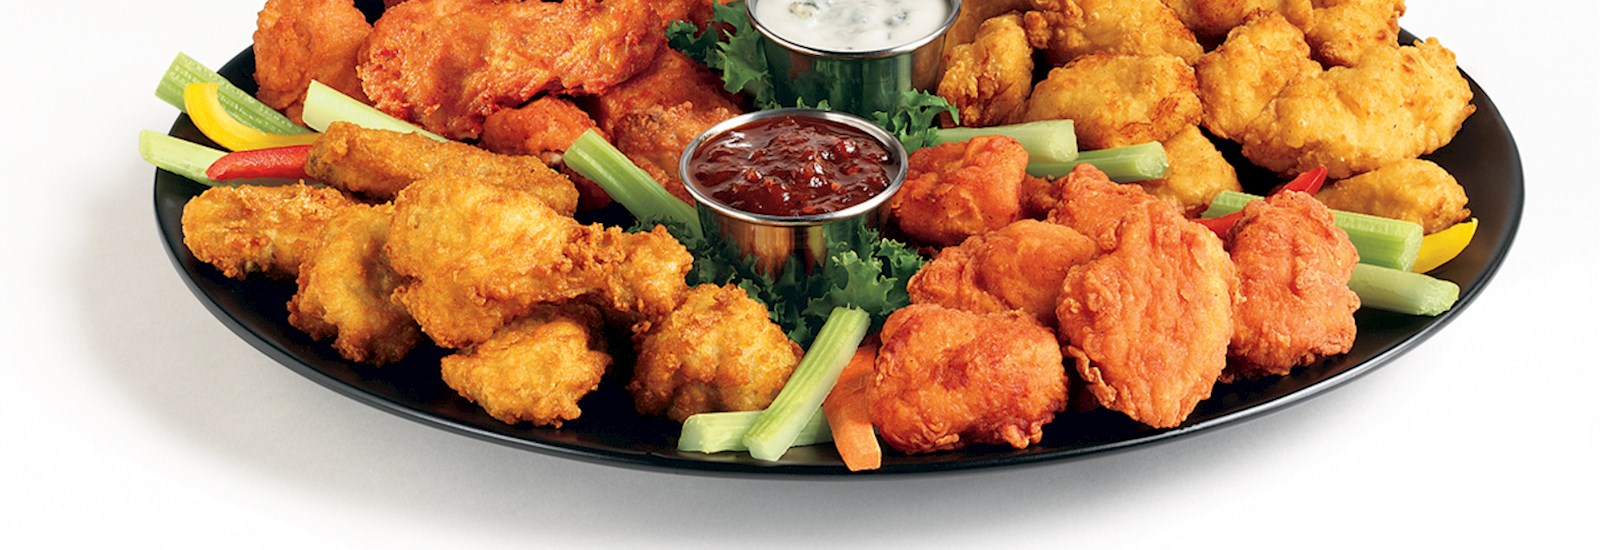 The #1 Selling Breaded Wings in Foodservice!